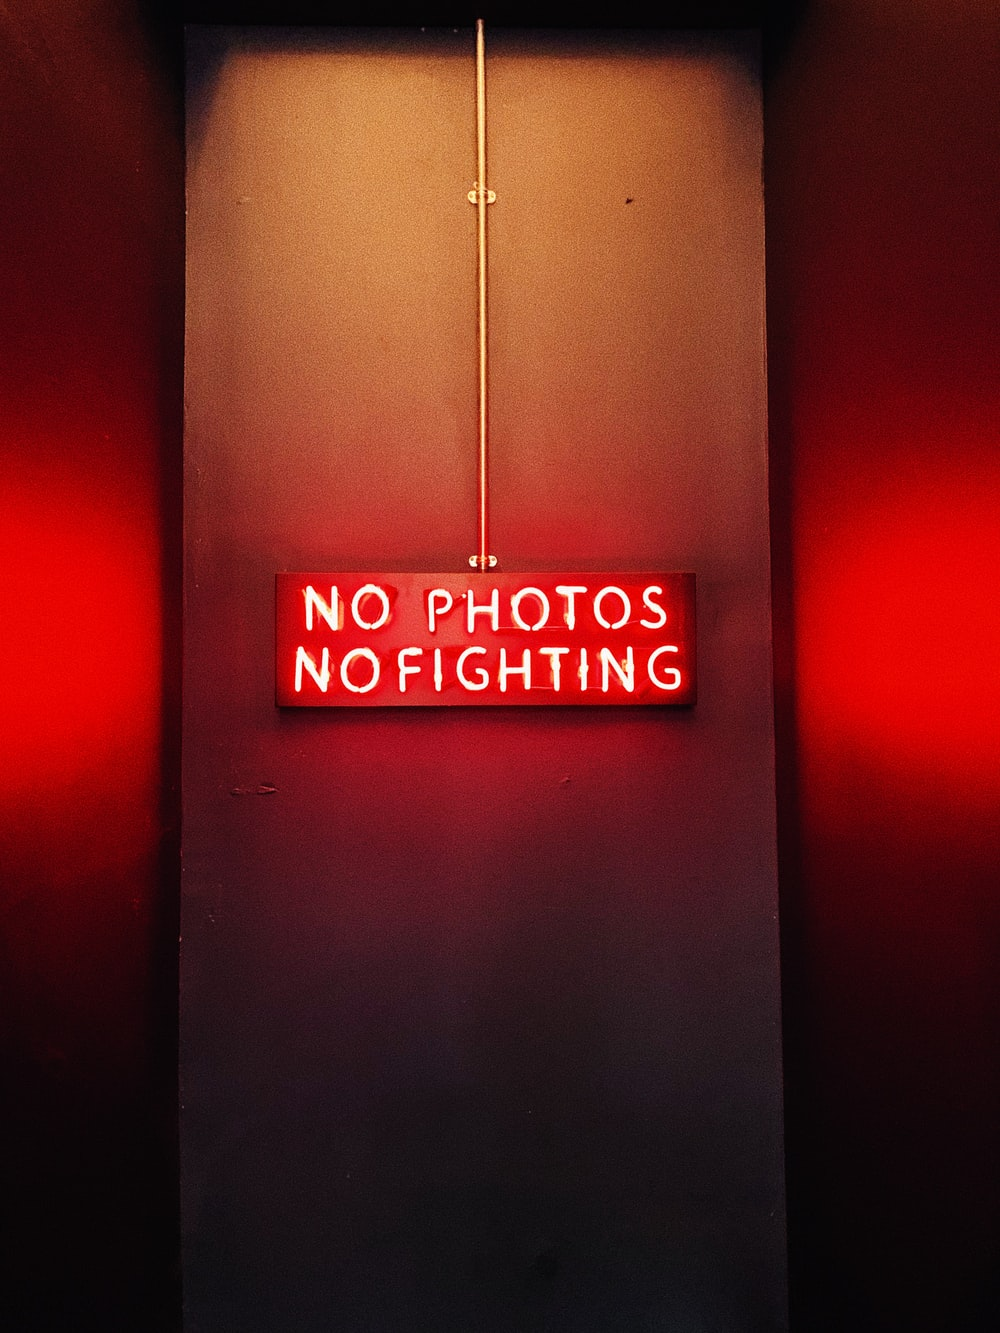 no photos no fighting signage